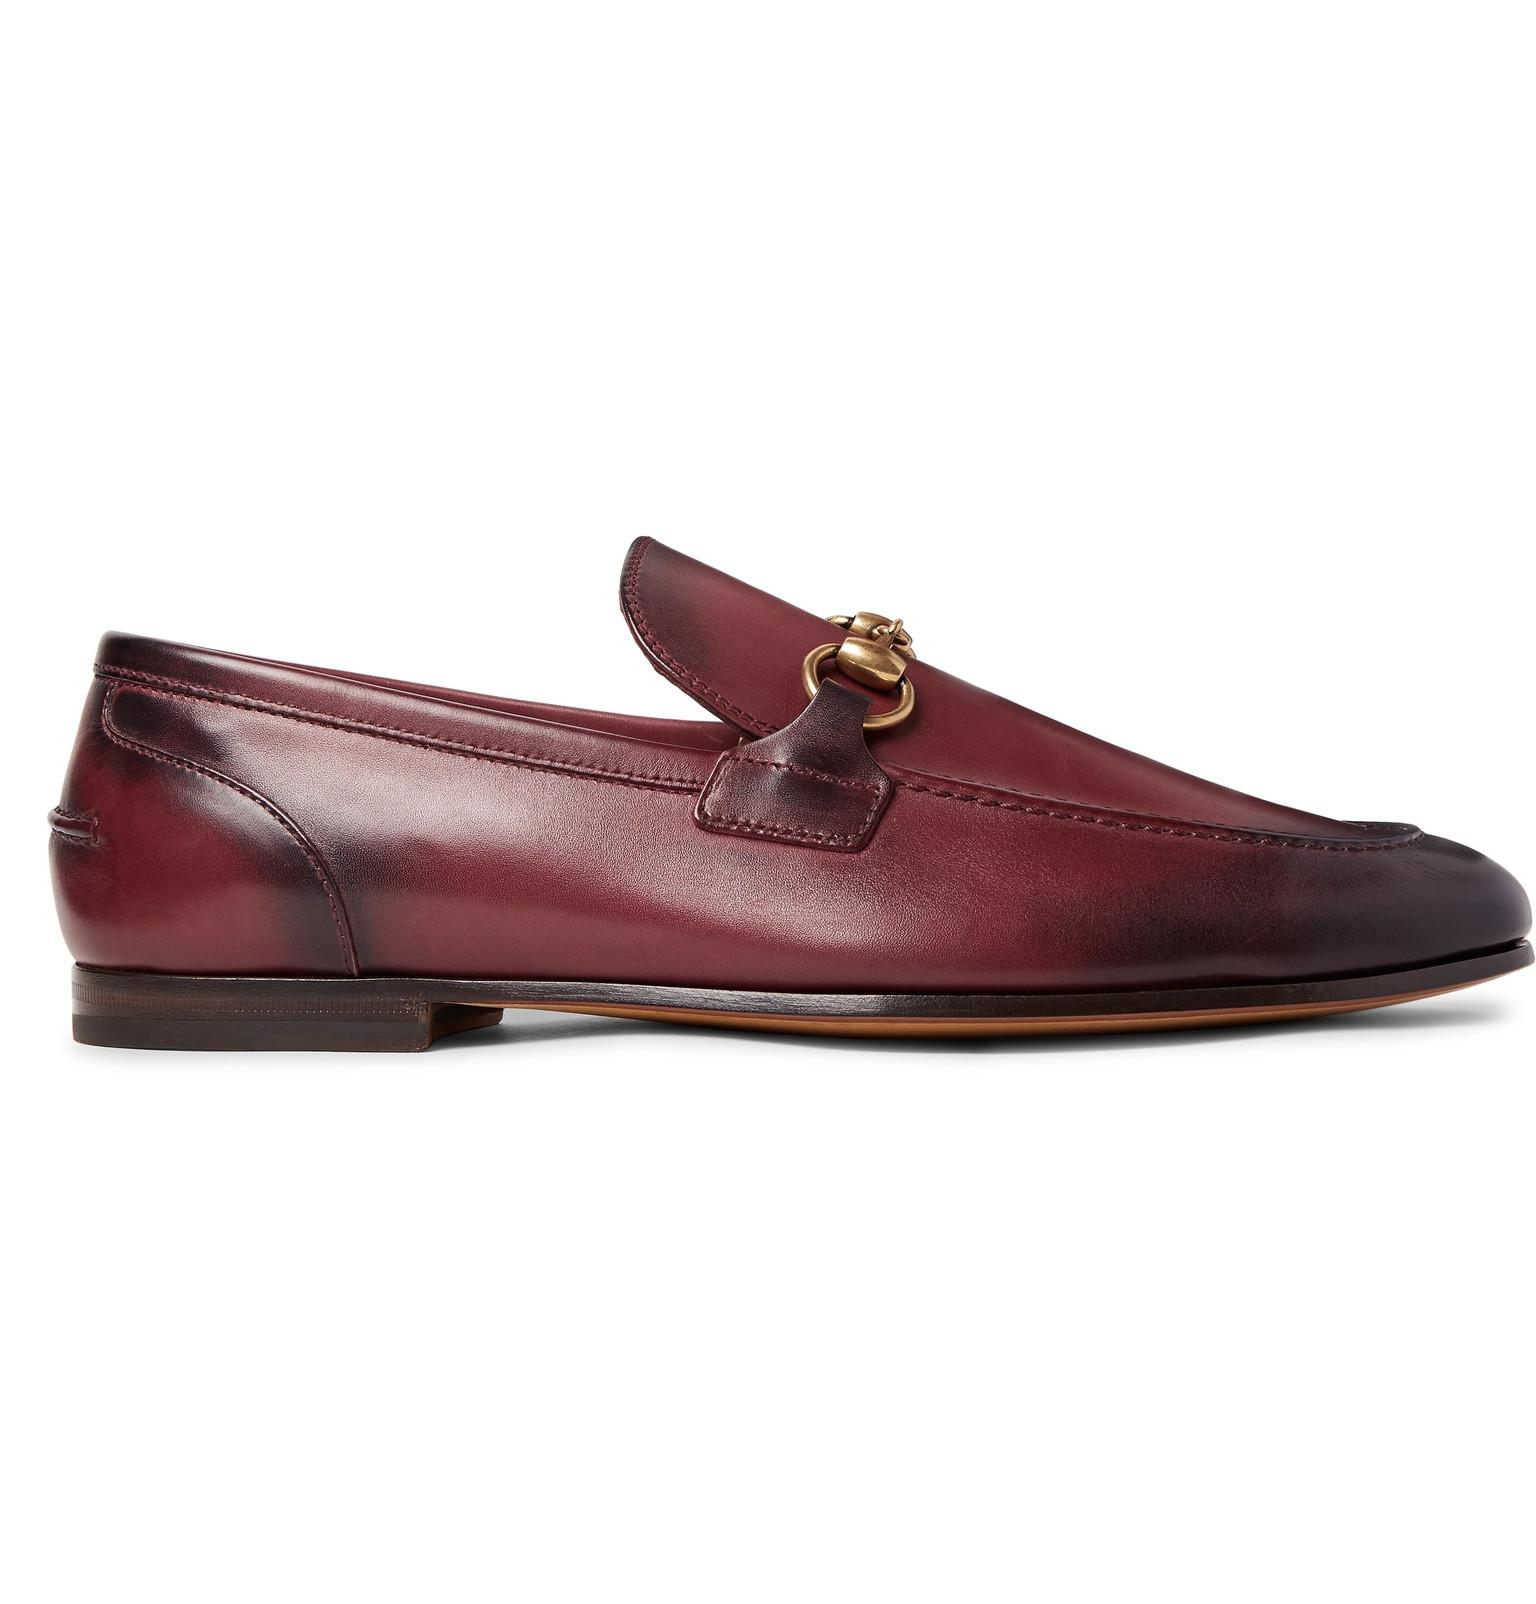 7ec5798d5cf Lyst - Gucci Horsebit Burnished-leather Loafers in Red for Men